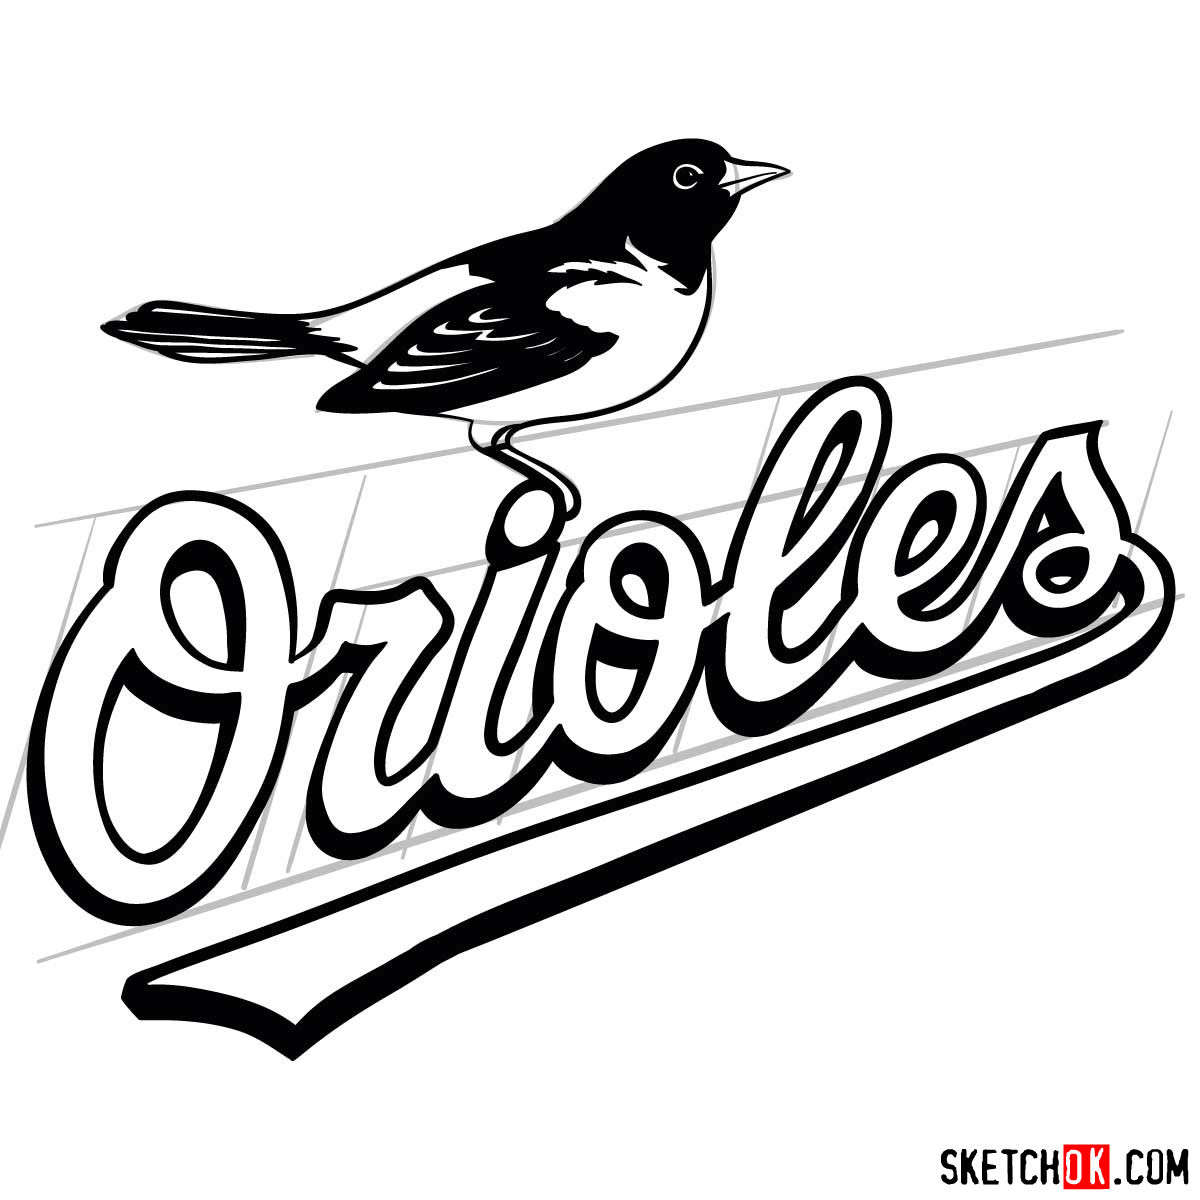 How to draw Baltimore Orioles logo | MLB logos - step 11